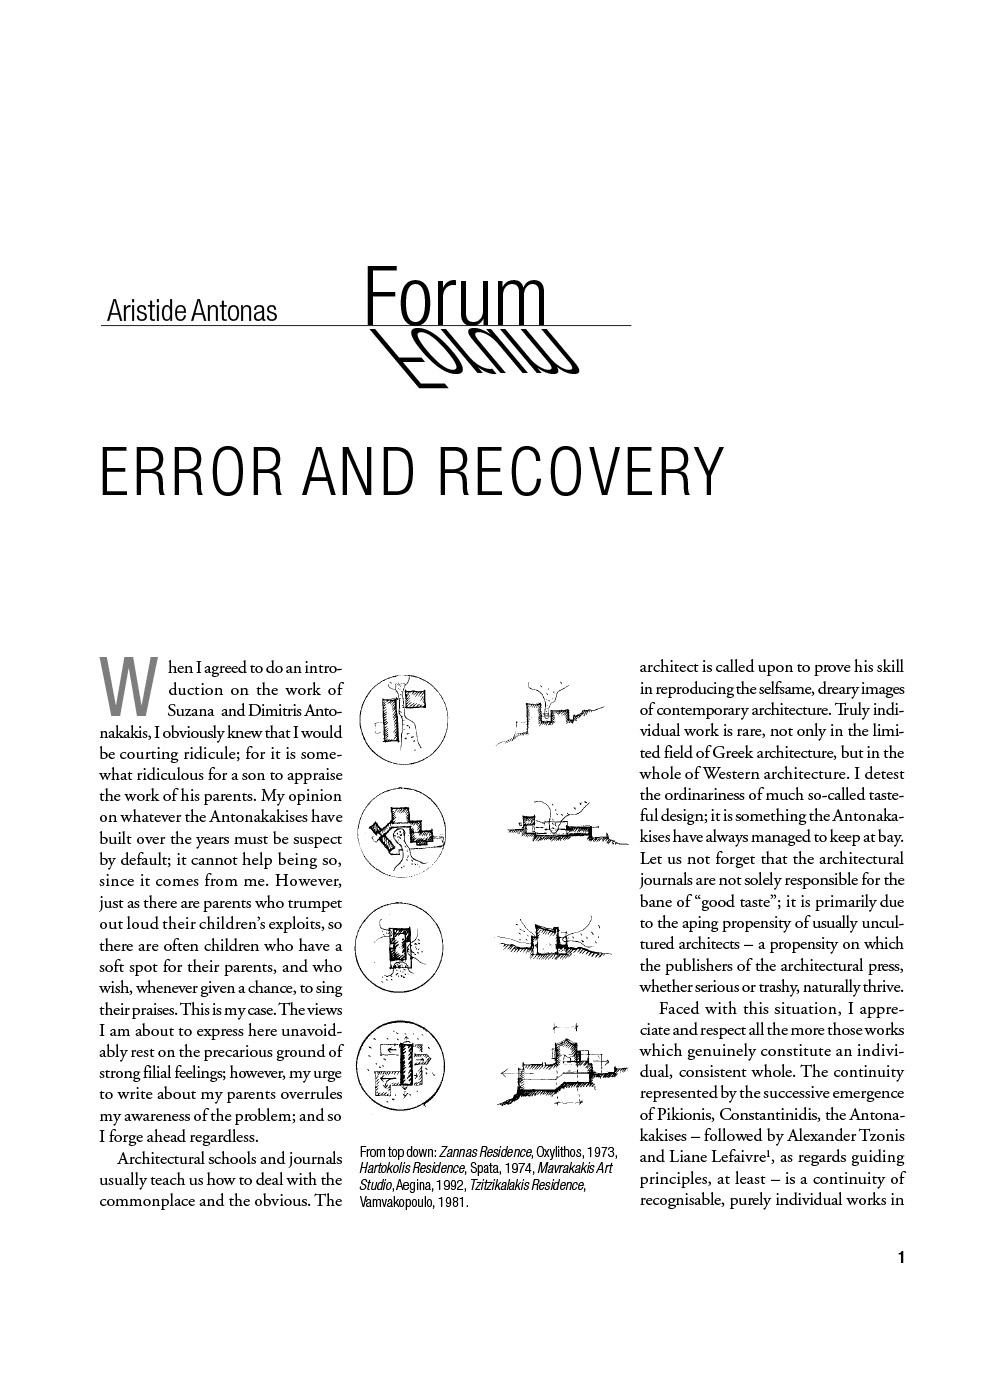 Error and Recovery